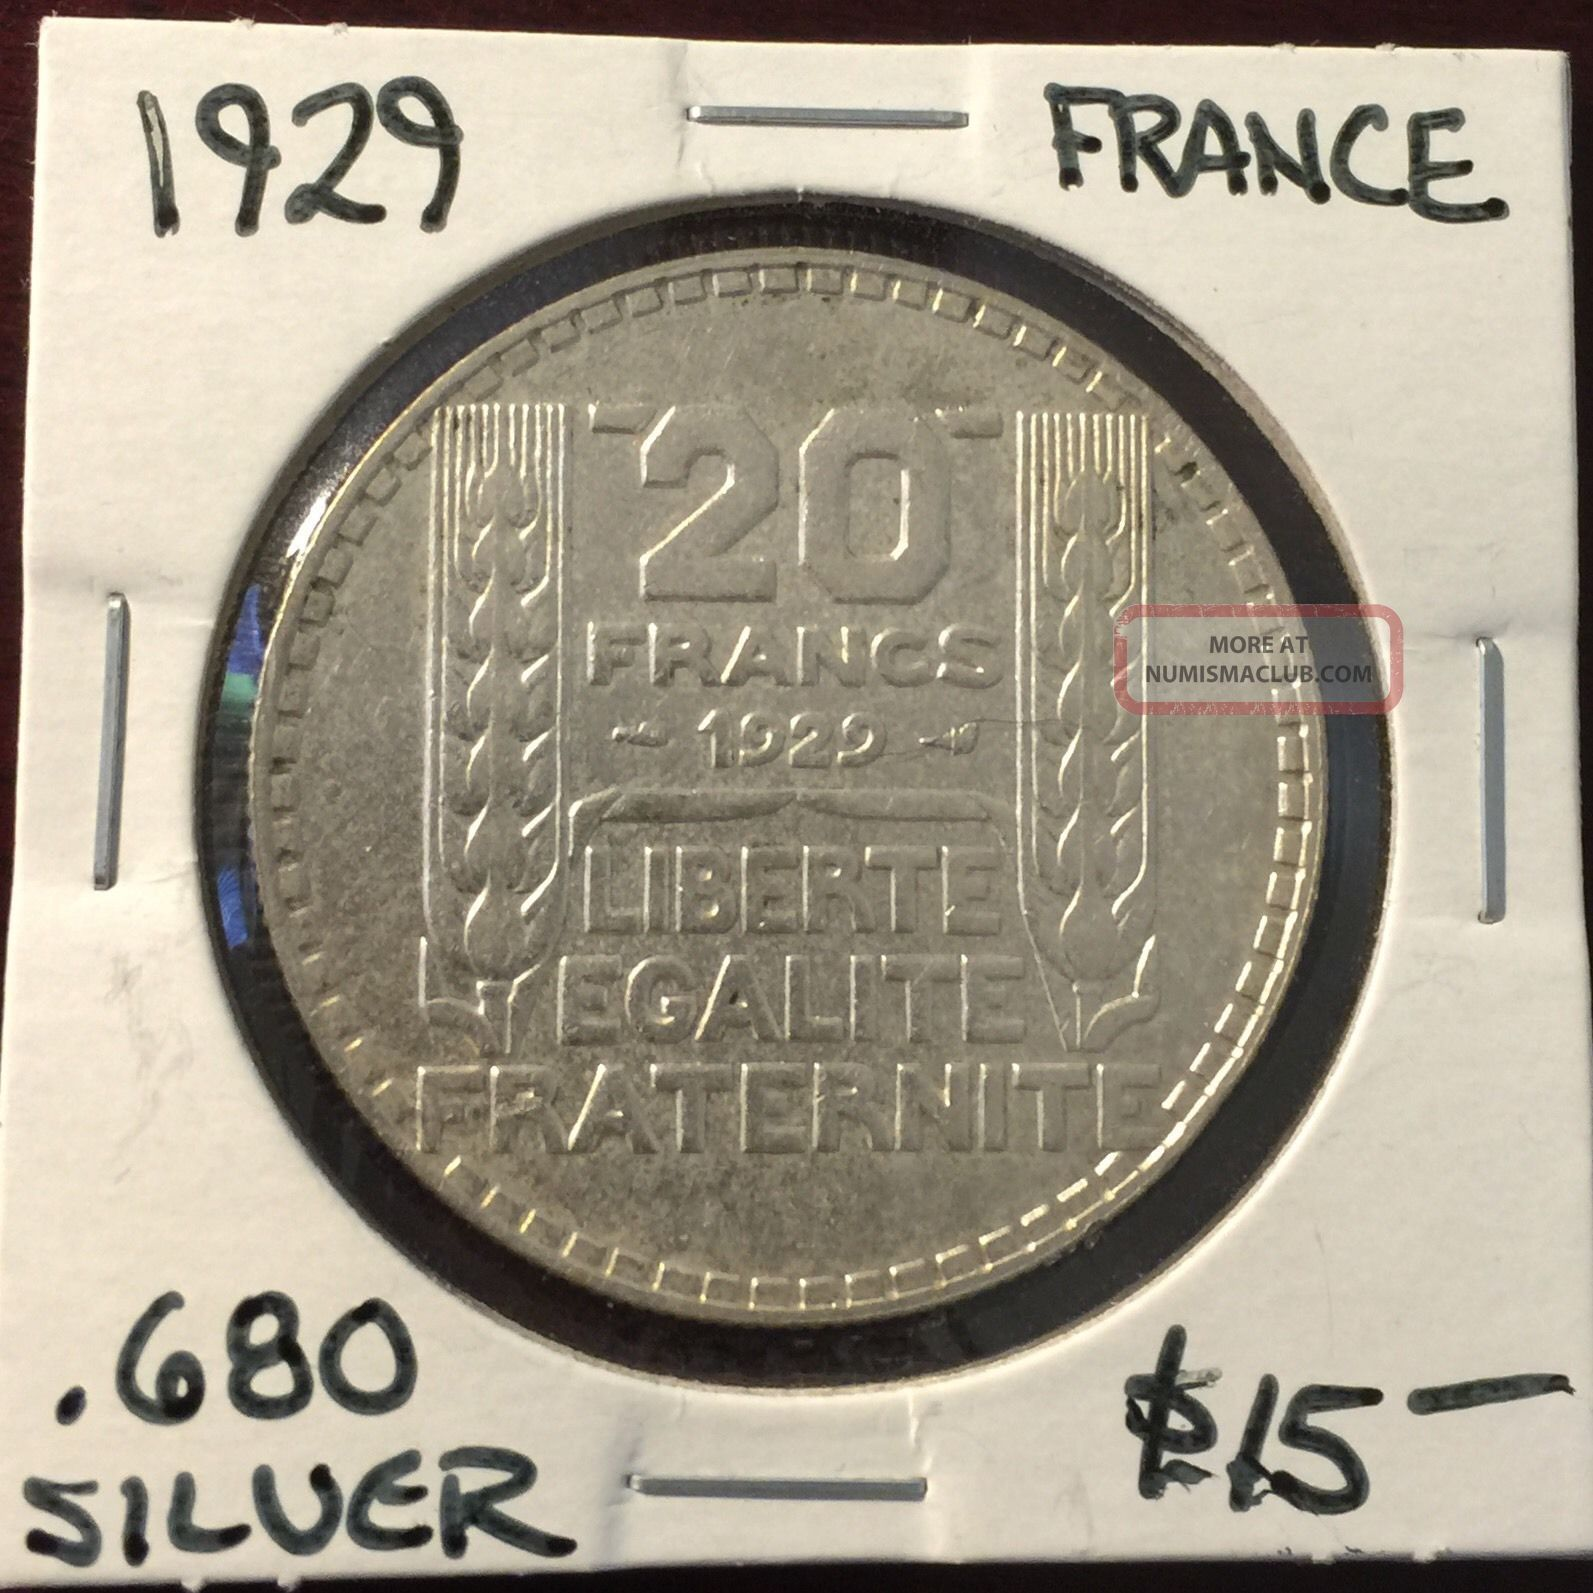 France Silver 1929 20 Francs Europe photo